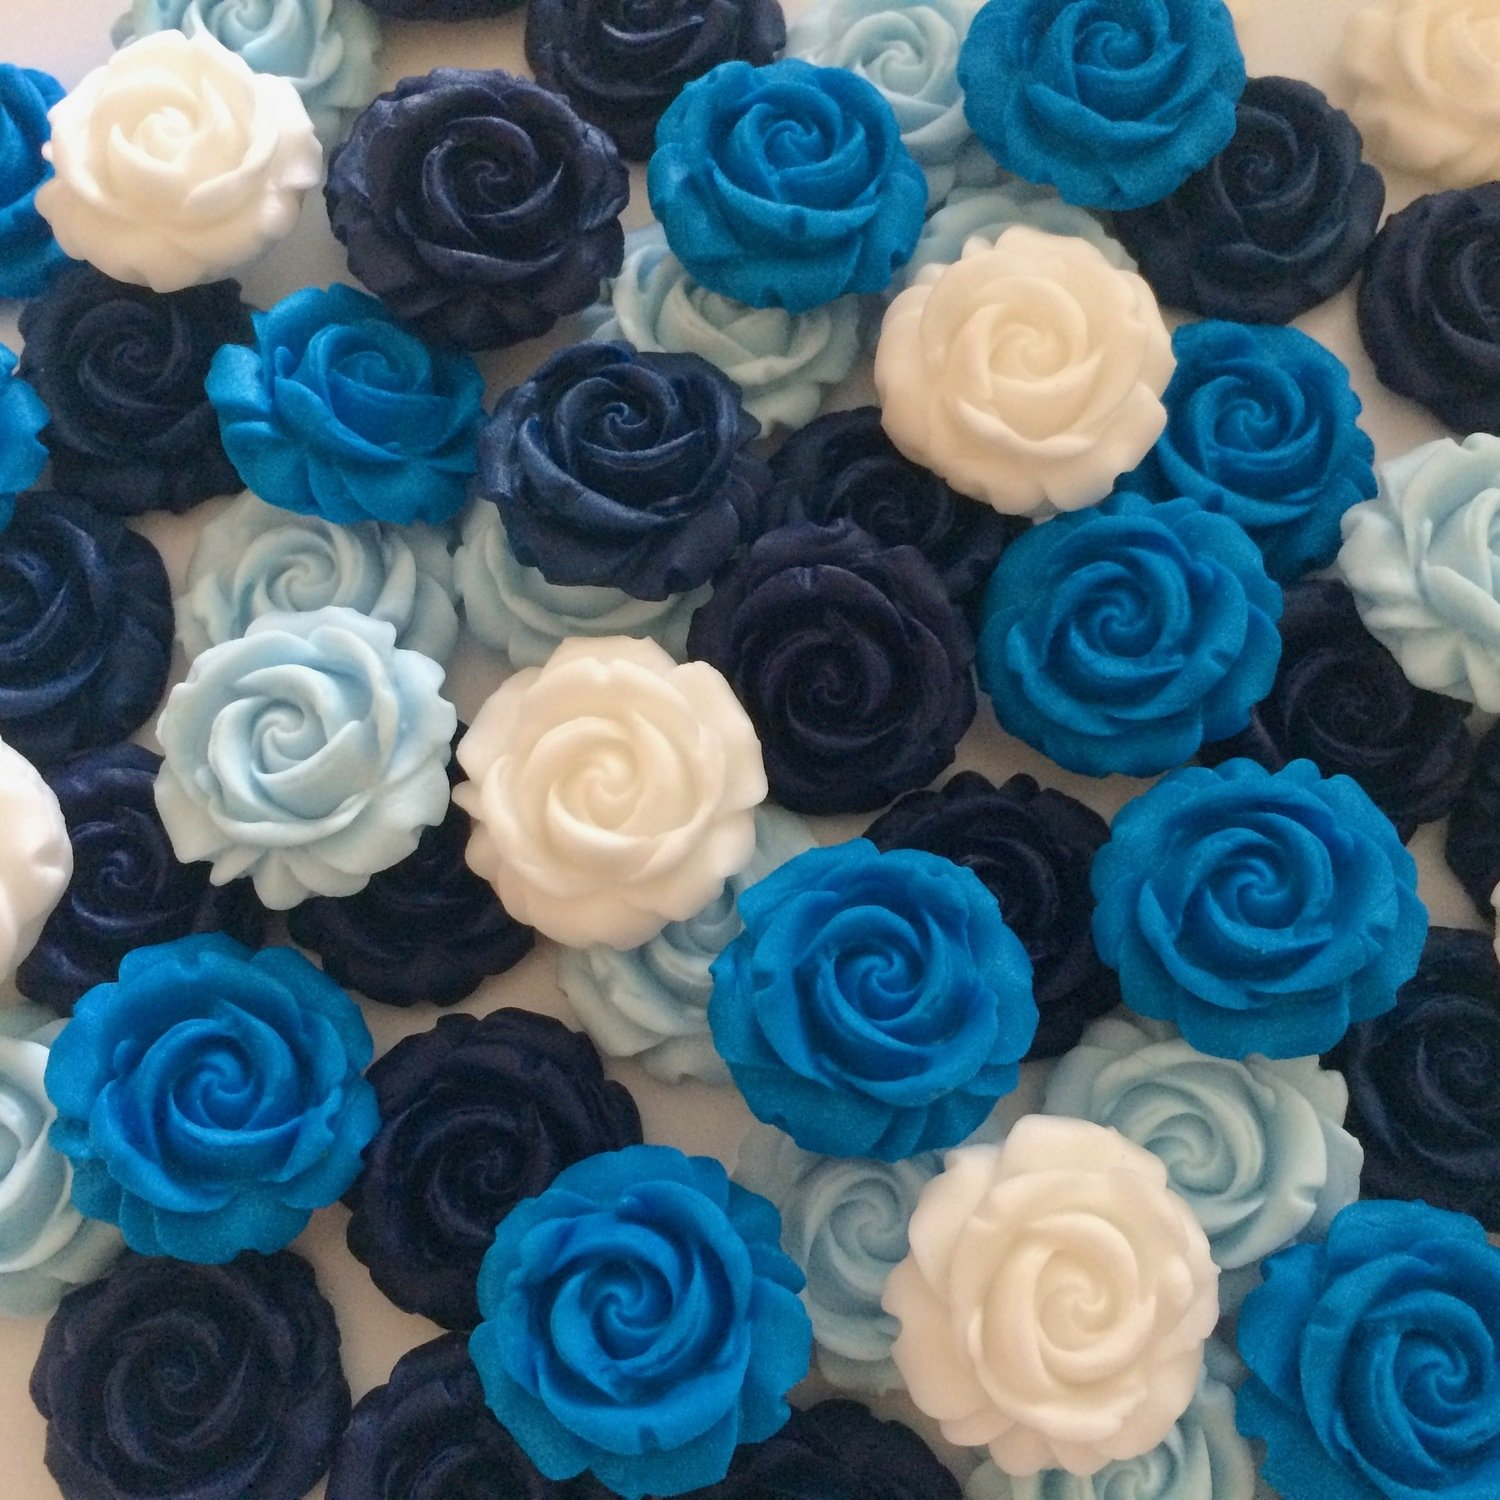 Mixed Blue Roses